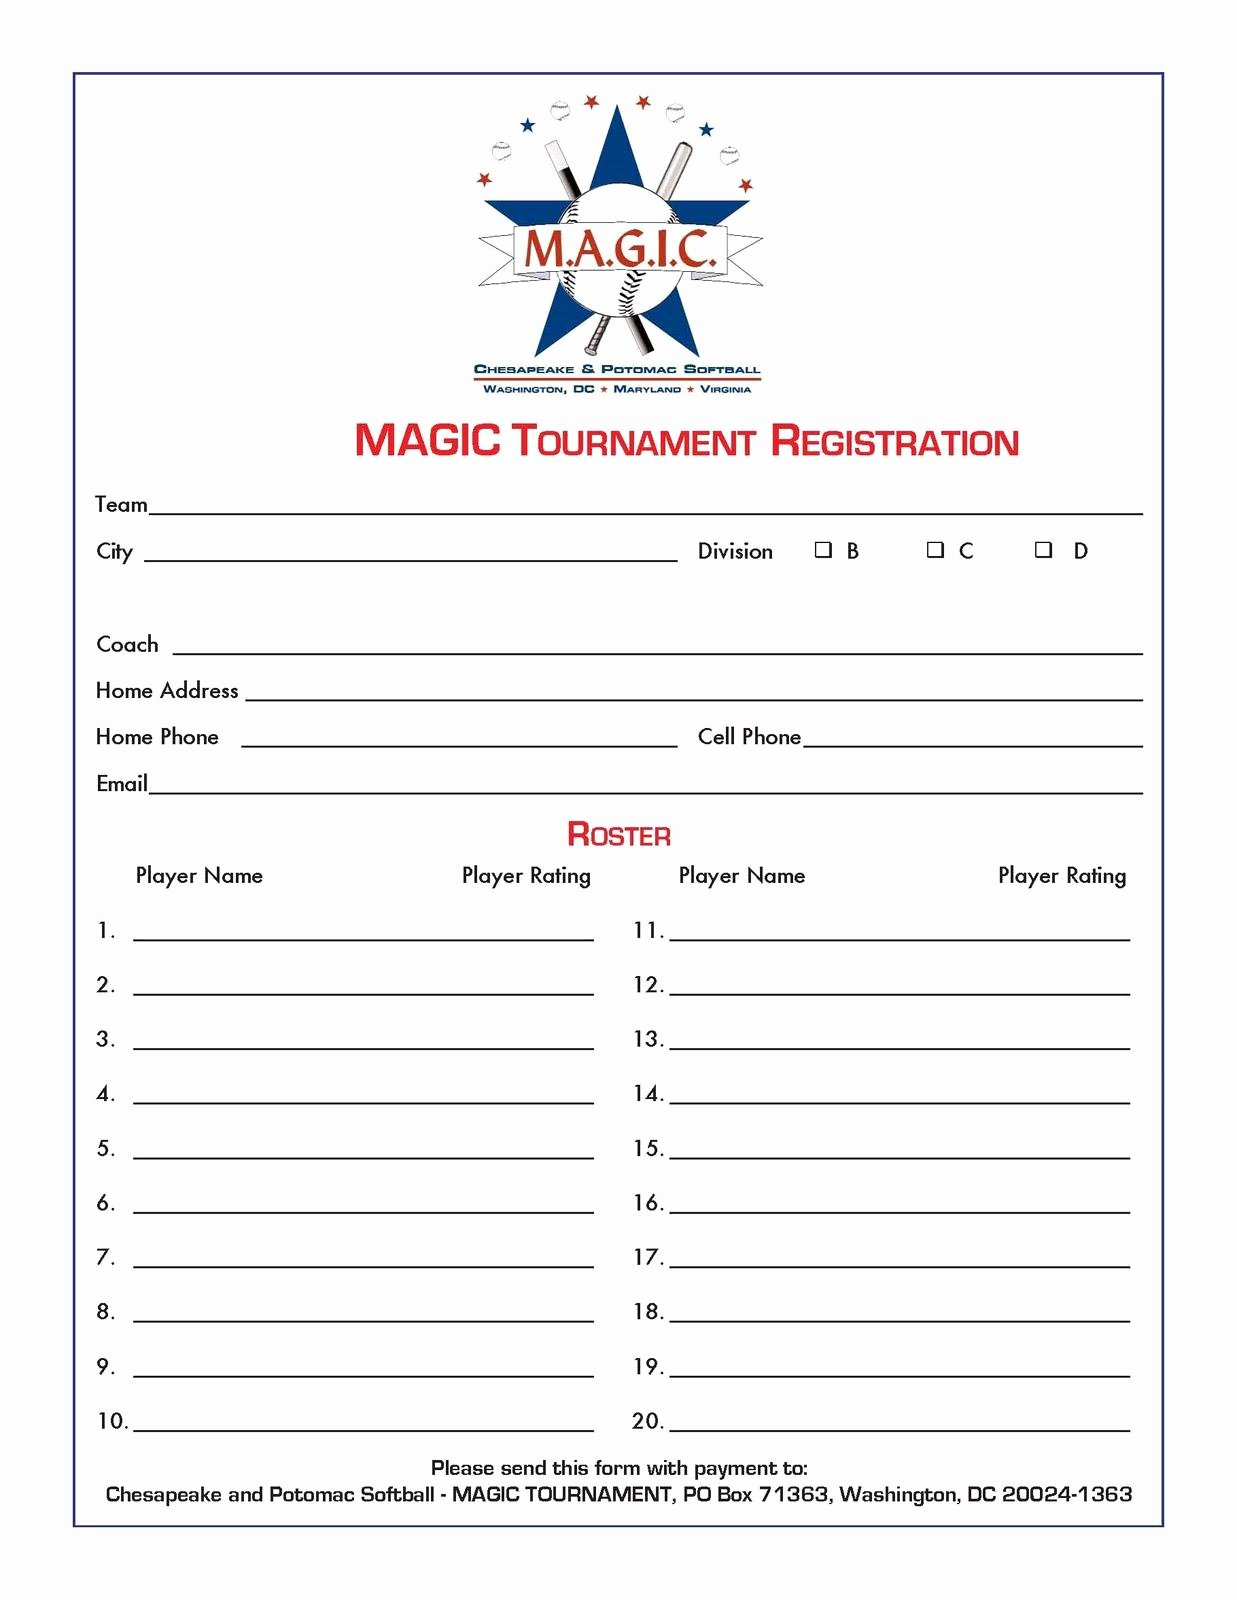 Free Sports Registration form Template Elegant Magic tournament August 2011